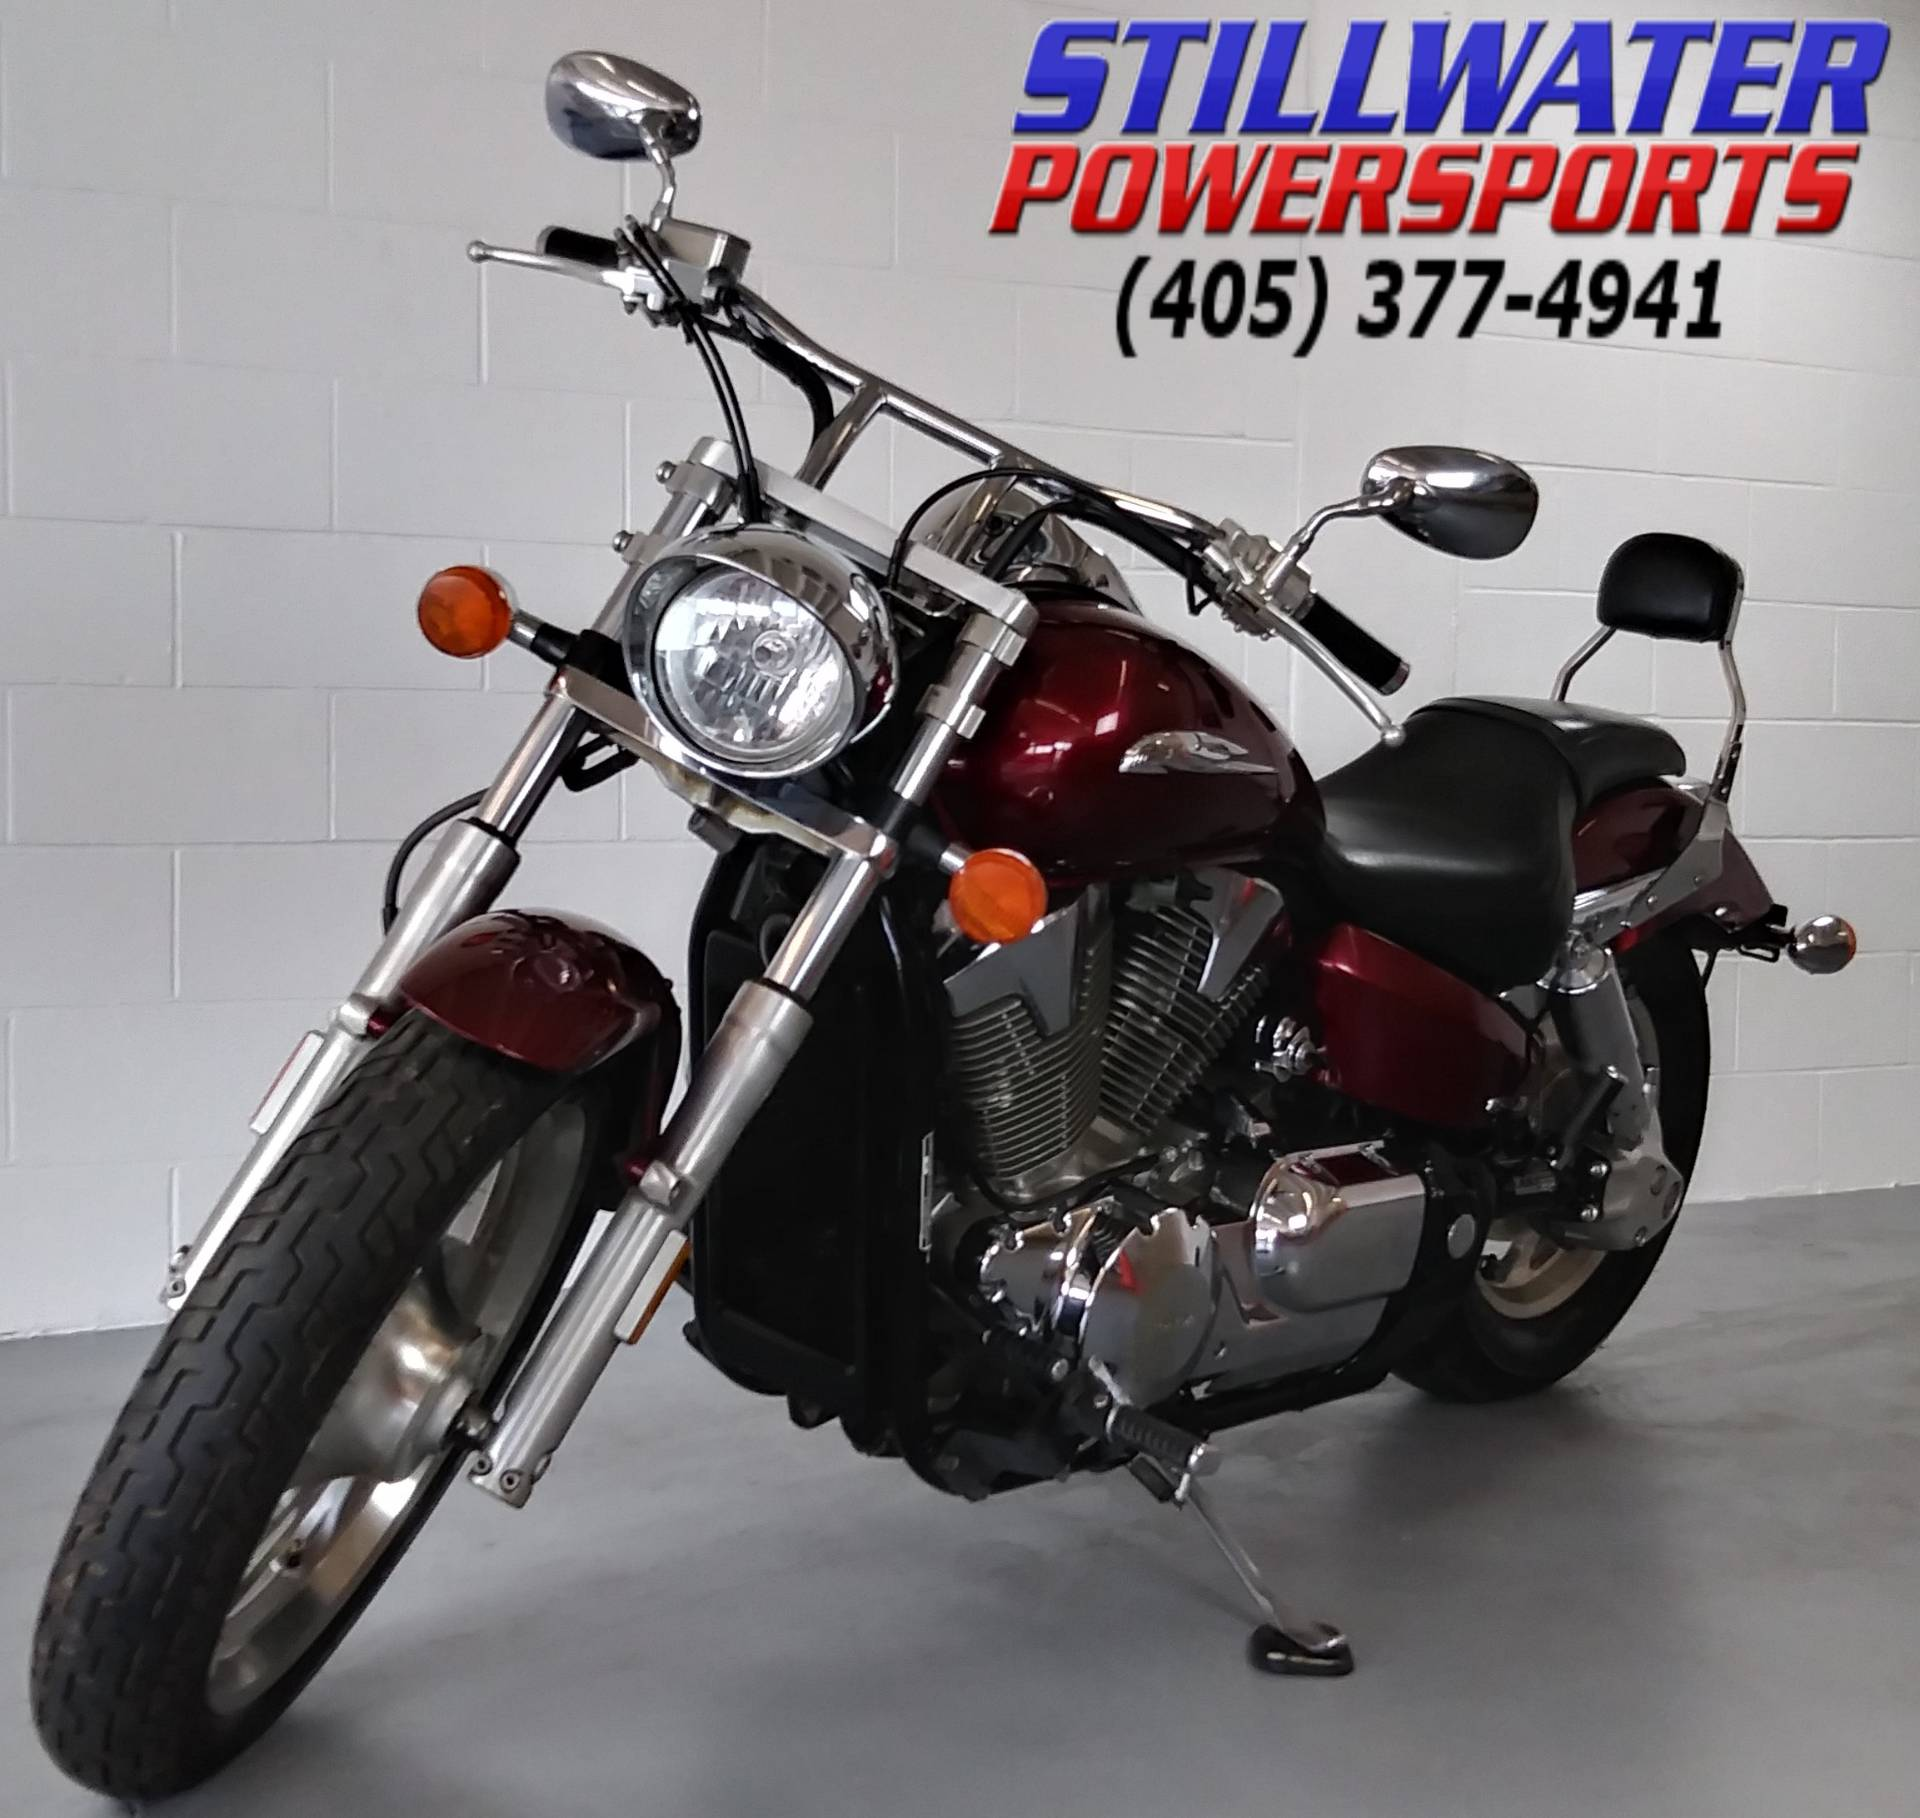 2006 Honda VTX™1300C in Stillwater, Oklahoma - Photo 2